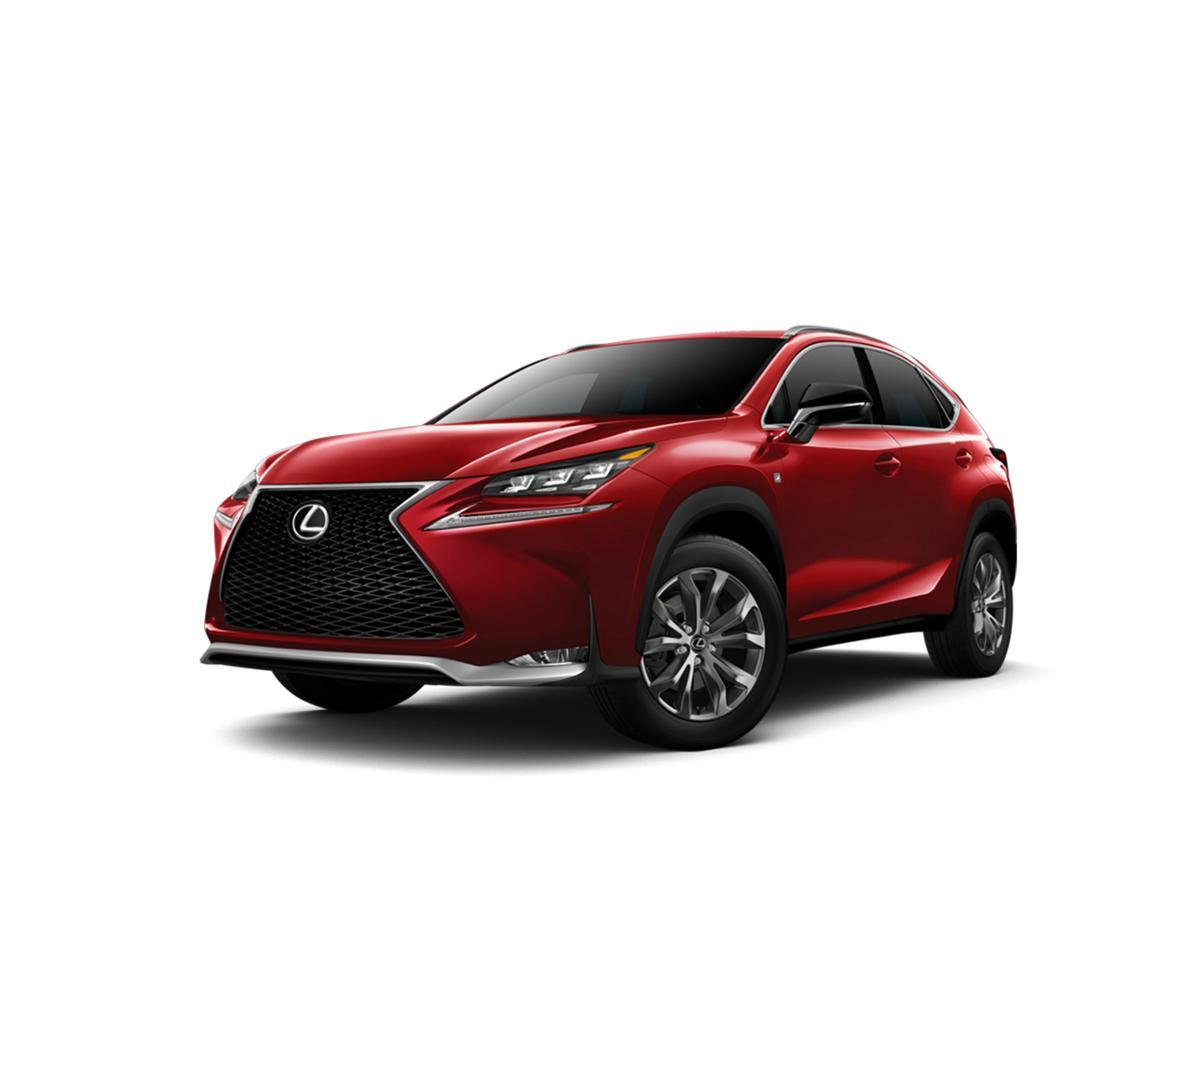 2017 lexus nx turbo f sport in matador red mica for sale in lakeway texas jtjyarbz5h2054973. Black Bedroom Furniture Sets. Home Design Ideas